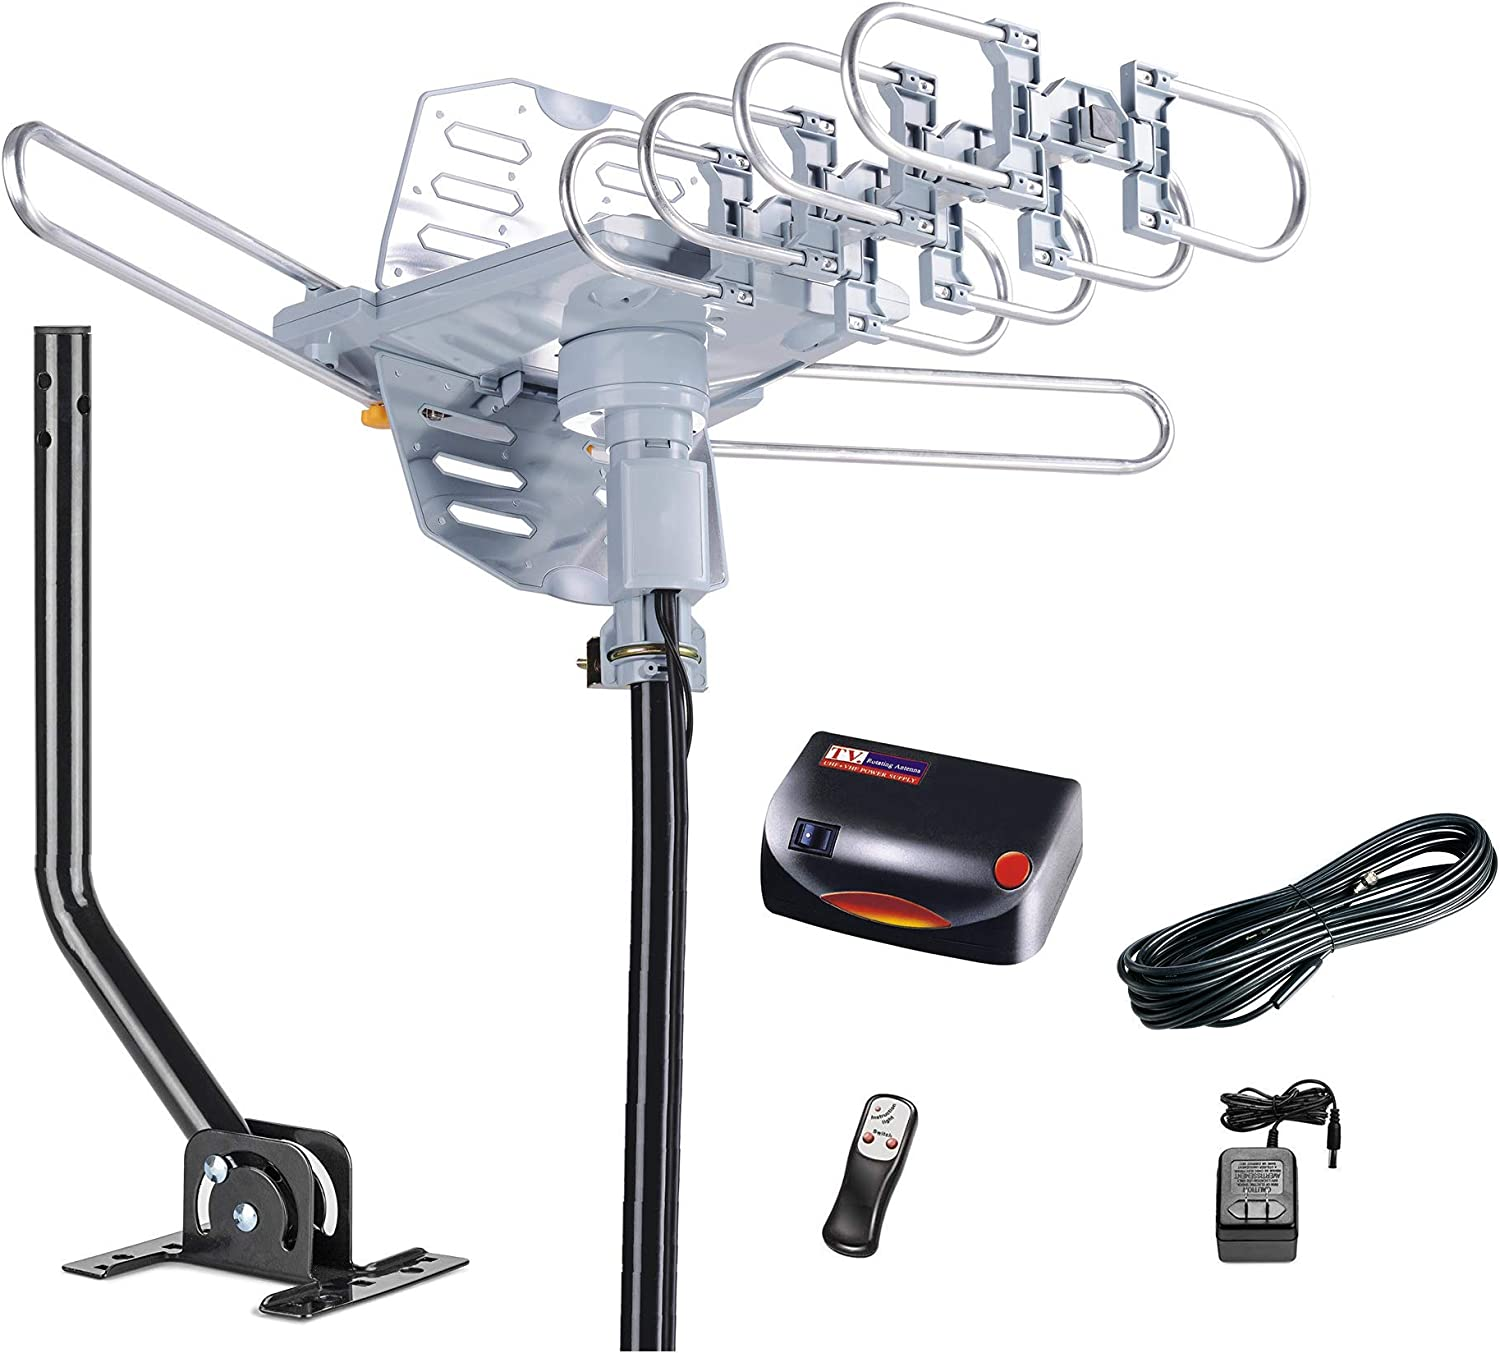 McDuory Outdoor 150 Miles Digital Antenna 360 Degree Rotation Amplified HDTV Antenna -Support 2 TVs-UHF/VHF/1080P/4K - Infrared Remote - 40ft RG6 Cable and Mounting Pole Included